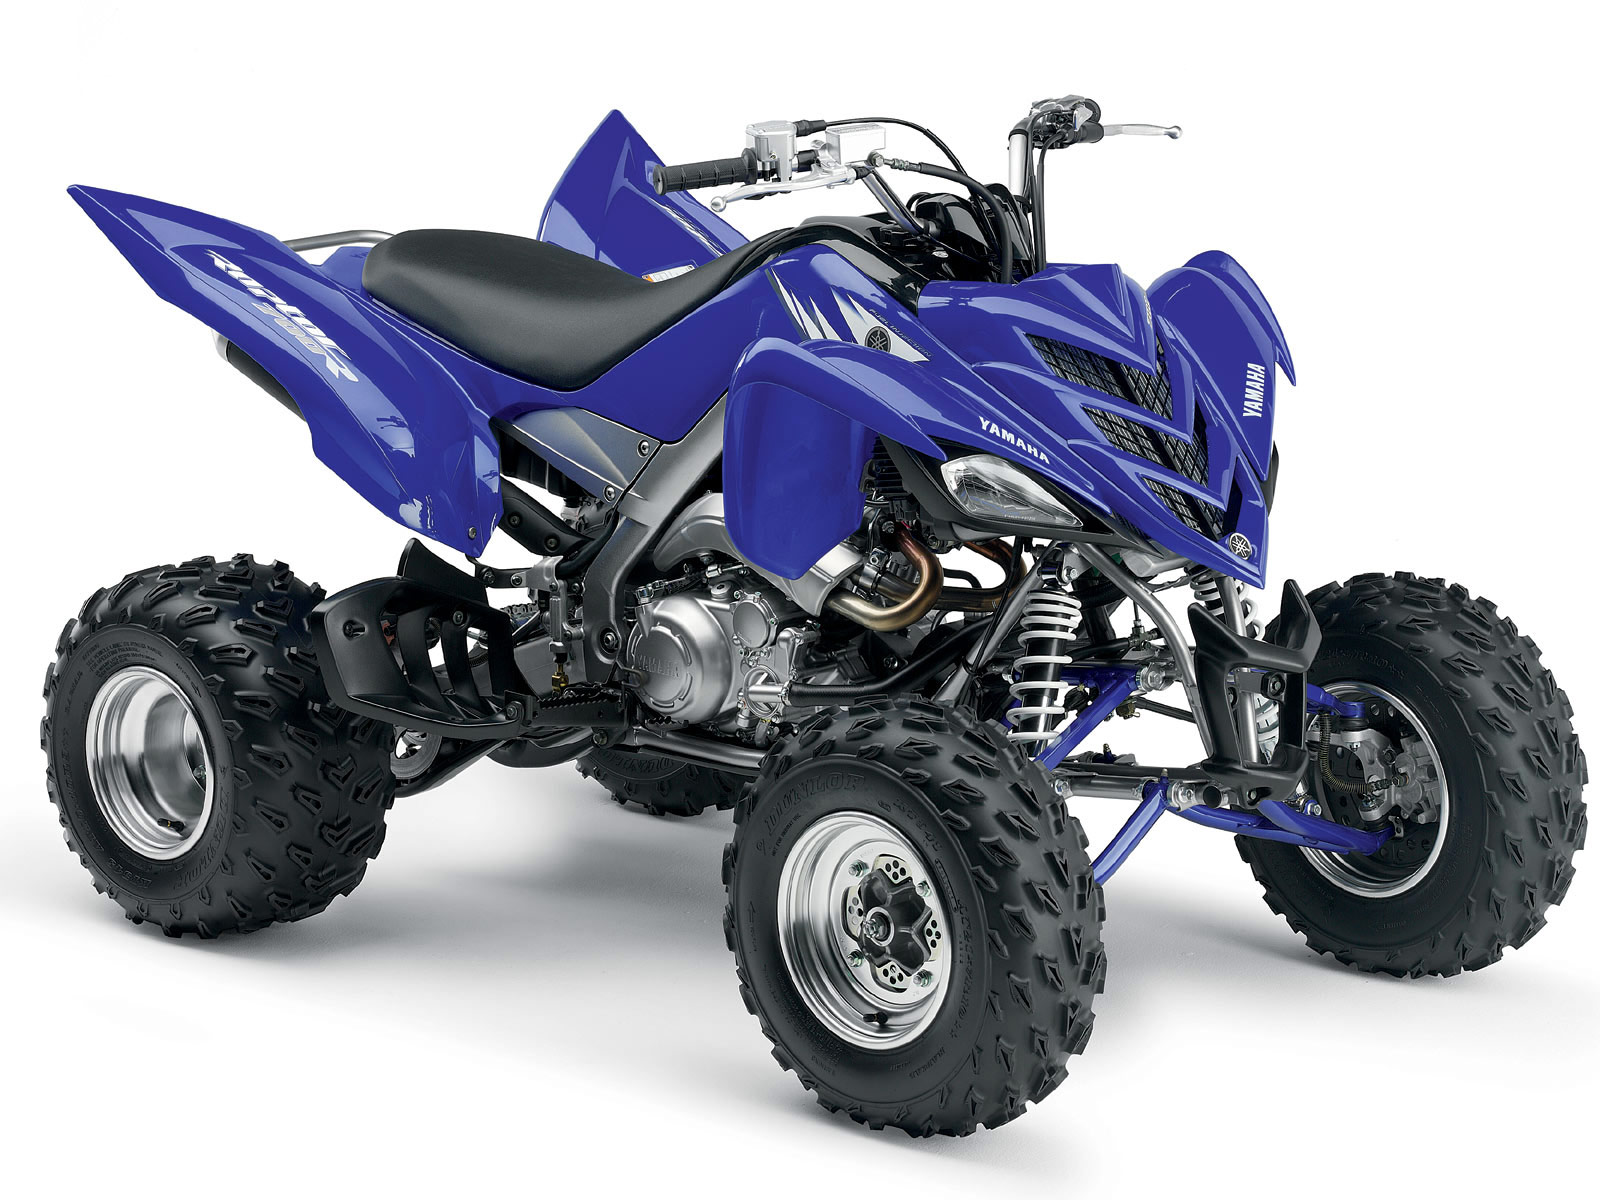 2006 yamaha raptor 700r atv pictures specifications. Black Bedroom Furniture Sets. Home Design Ideas